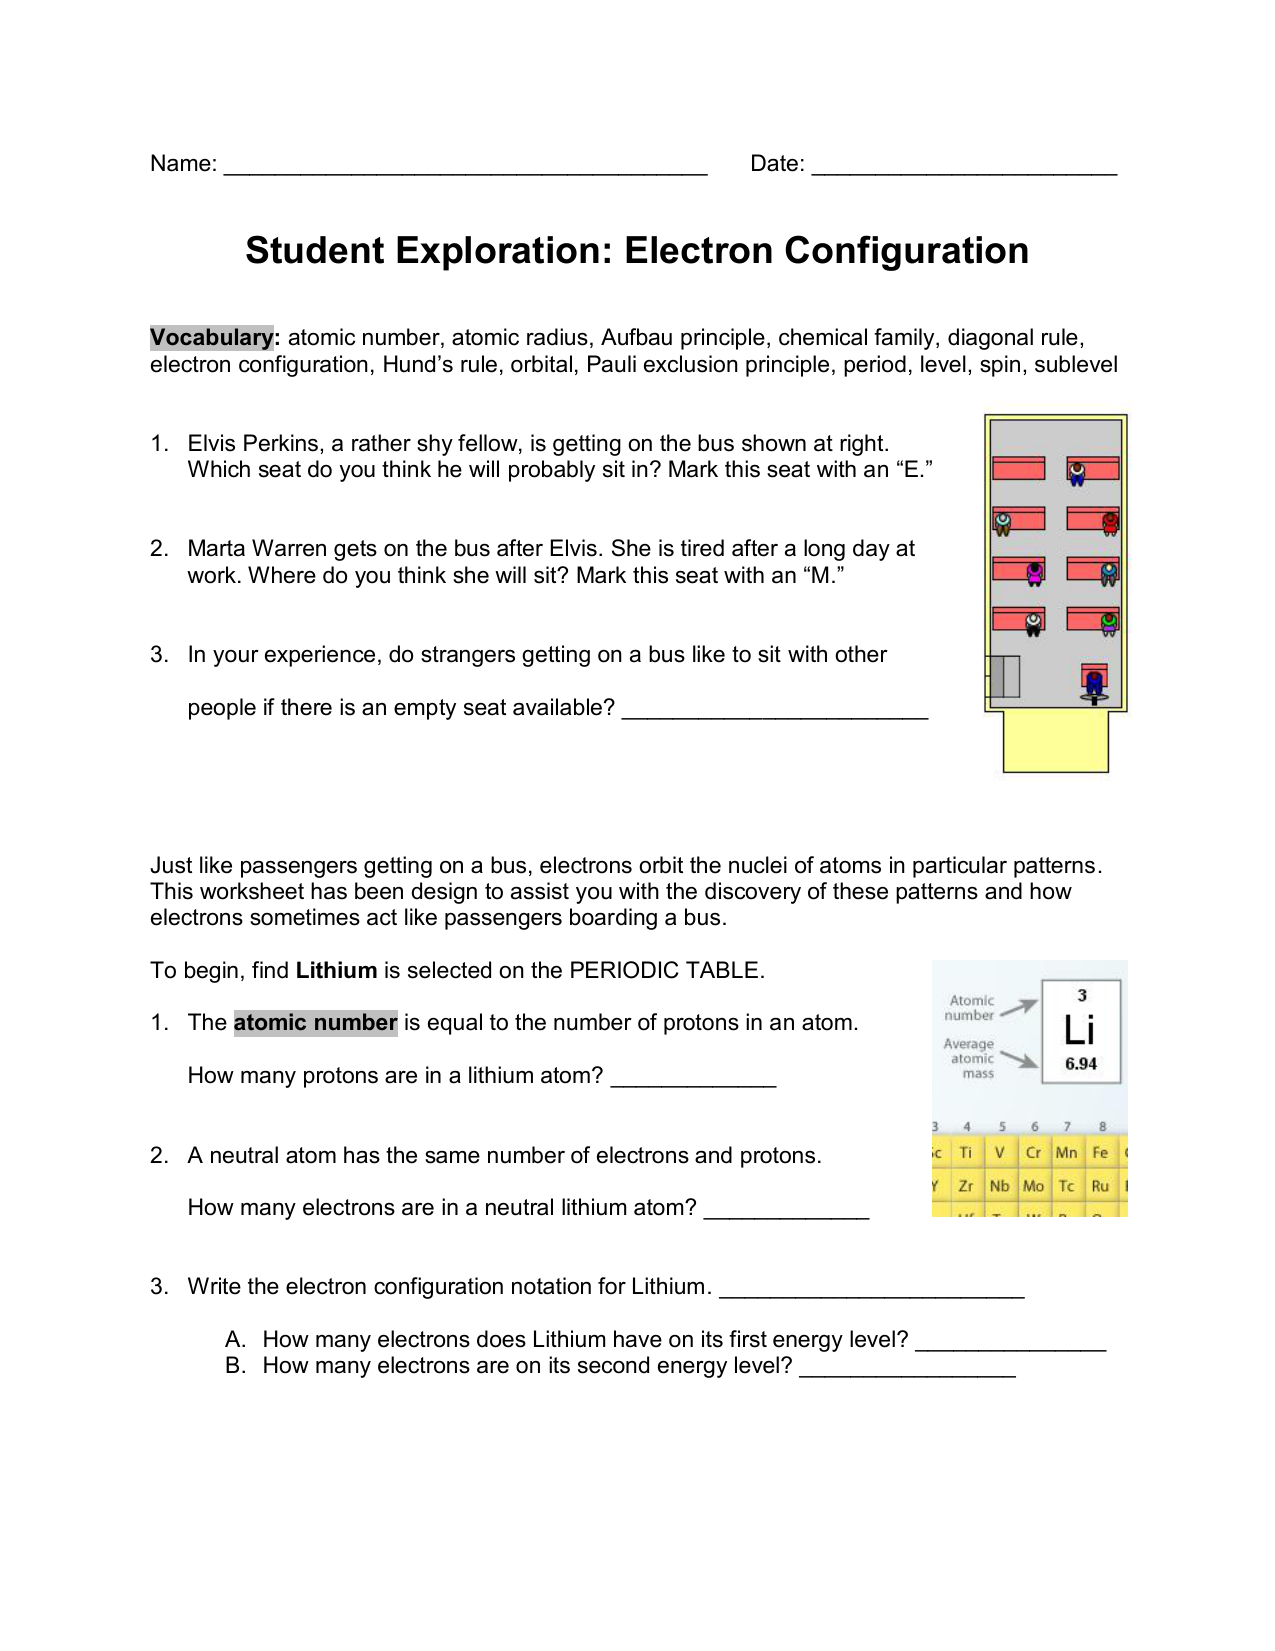 Writing Electron Configuration Worksheet Answer Key New ly also Electron Configuration Practice Worksheet furthermore electron configuration Archives   Valentines Day Worksheet besides Electron Configuration Practice Worksheet   Electron Configuration additionally Electron configurations  practice    Khan Academy additionally Worksheet 3 Answer Key from 2008 also 57  electron configuration worksheet besides Download electron configuration worksheet pdf PDF Download   writing together with Student Exploration  Electron Configuration also Electron Configuration Worksheet in addition Atomic Structure Worksheet Answers Chemistry   Lobo Black likewise Electron Configuration Worksheet   Electron Configuration Worksheet besides Electron Configuration Worksheet   Teachers Pay Teachers additionally Electron Configurations Worksheet Practice Worksheets   idk further Electron Configuration Chemical Equation Practice Balancing furthermore . on electron configuration worksheet answer key